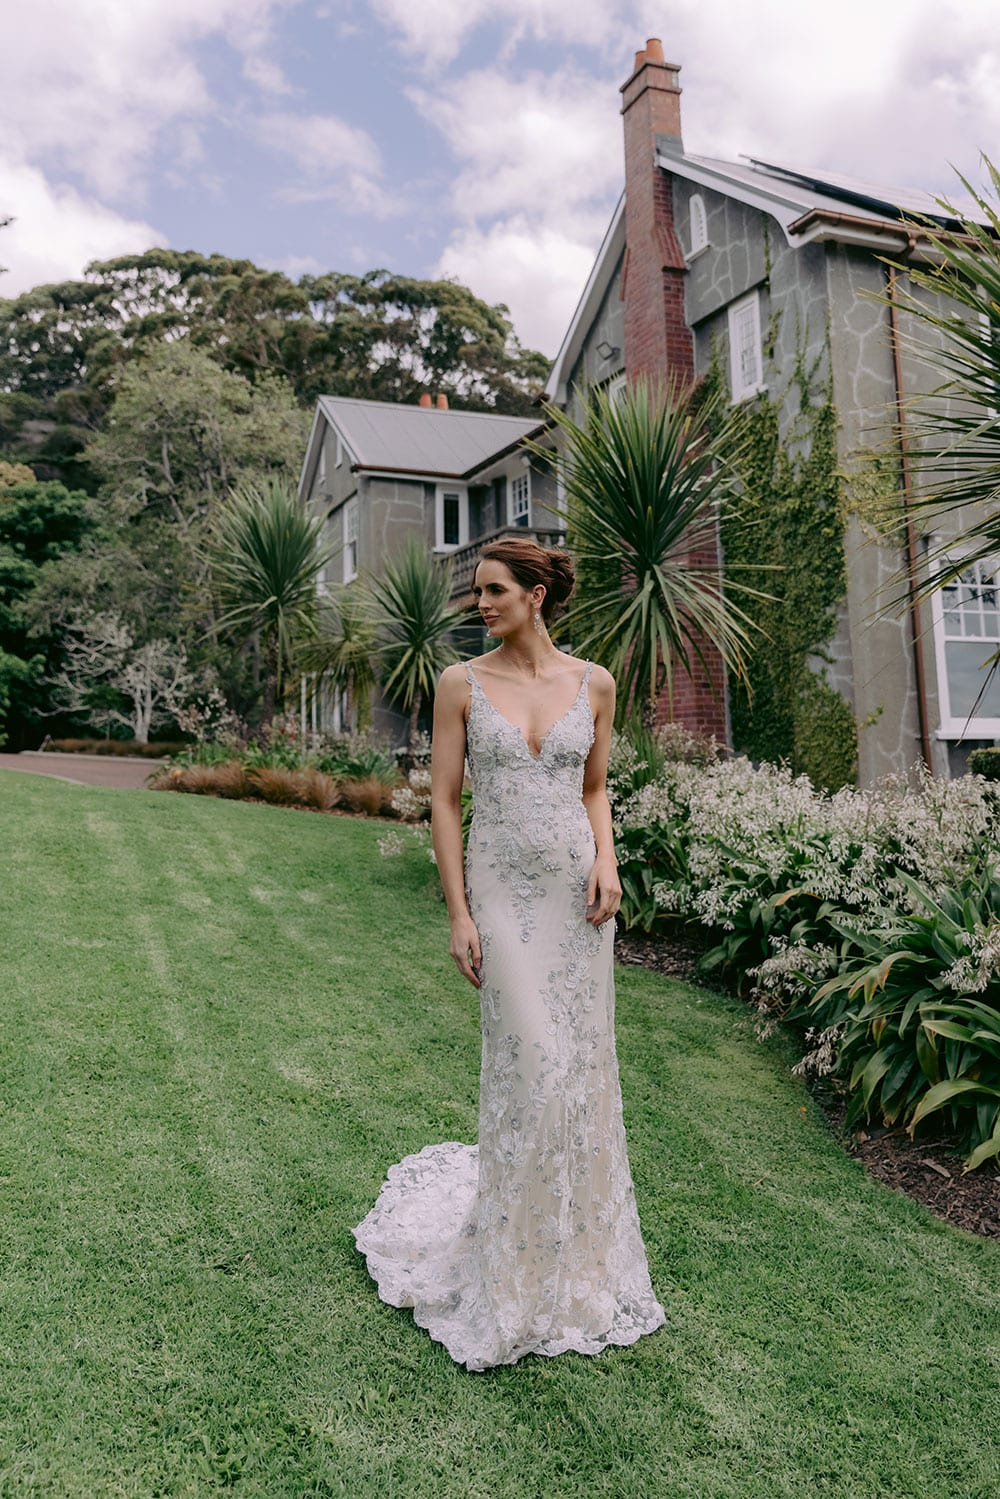 Kazumi Wedding gown from Vinka Design - Flattering and form fitting wedding dress in soft grey shades on a blush base. Low sheer back is adorned with hand-appliqued lace, bodice has a deep V-neckline, & thin straps that compliment the shoulders. Model wearing gown walking through Clevedon gardens showing low front of dress with train flowing behind.